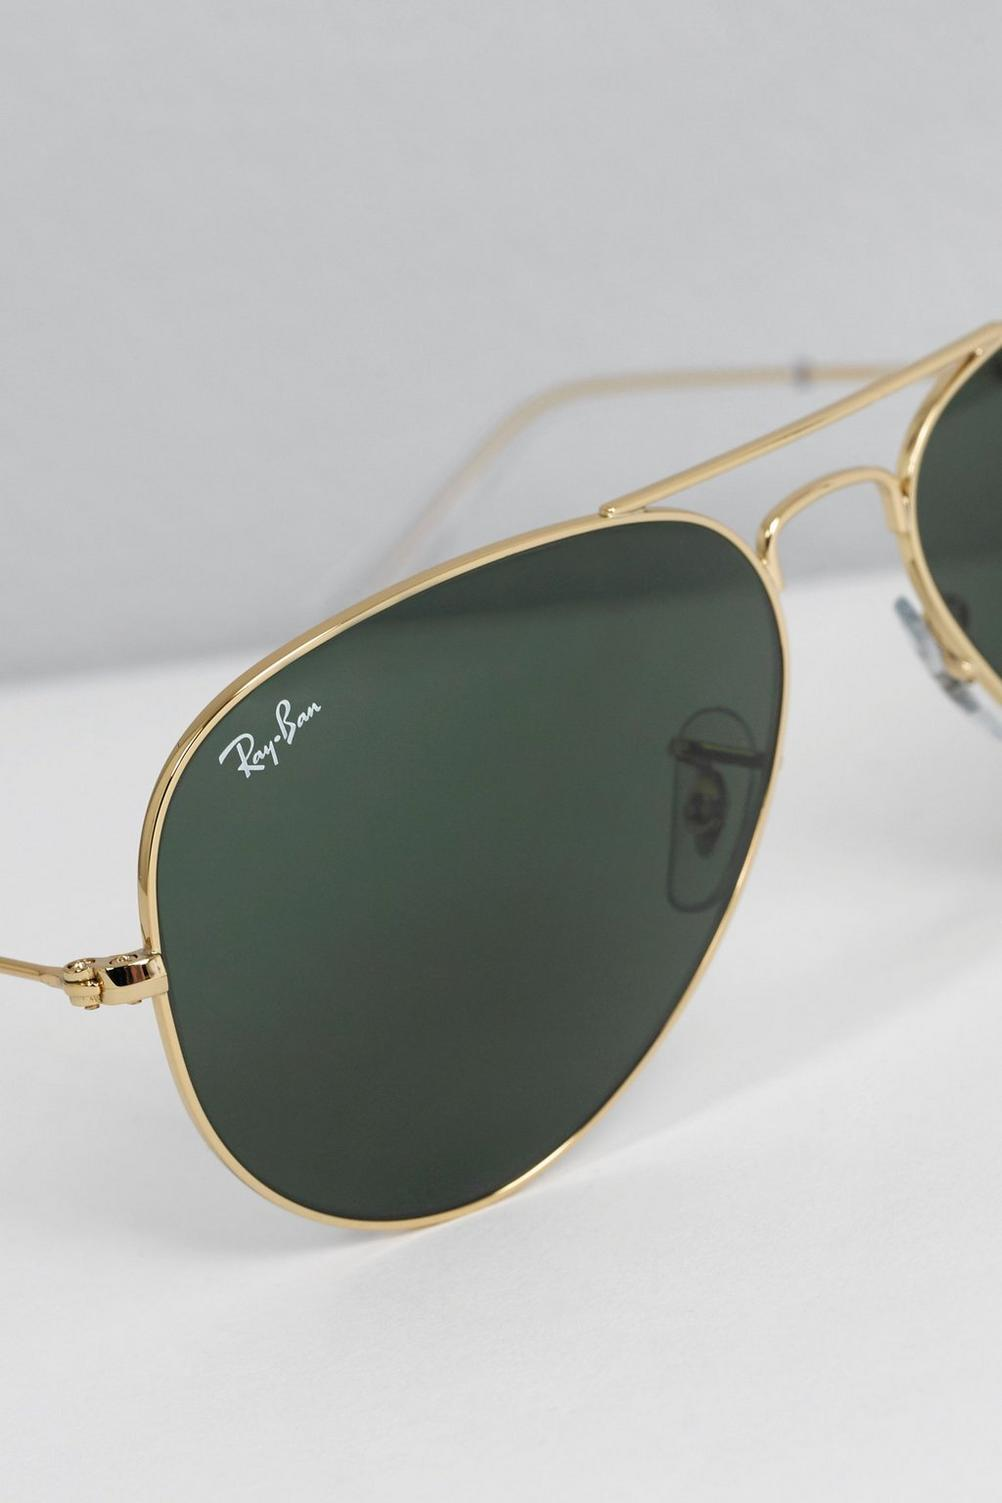 6378d3111d488 Image for Gold Green Ray-Ban Aviator Sunglasses from studio